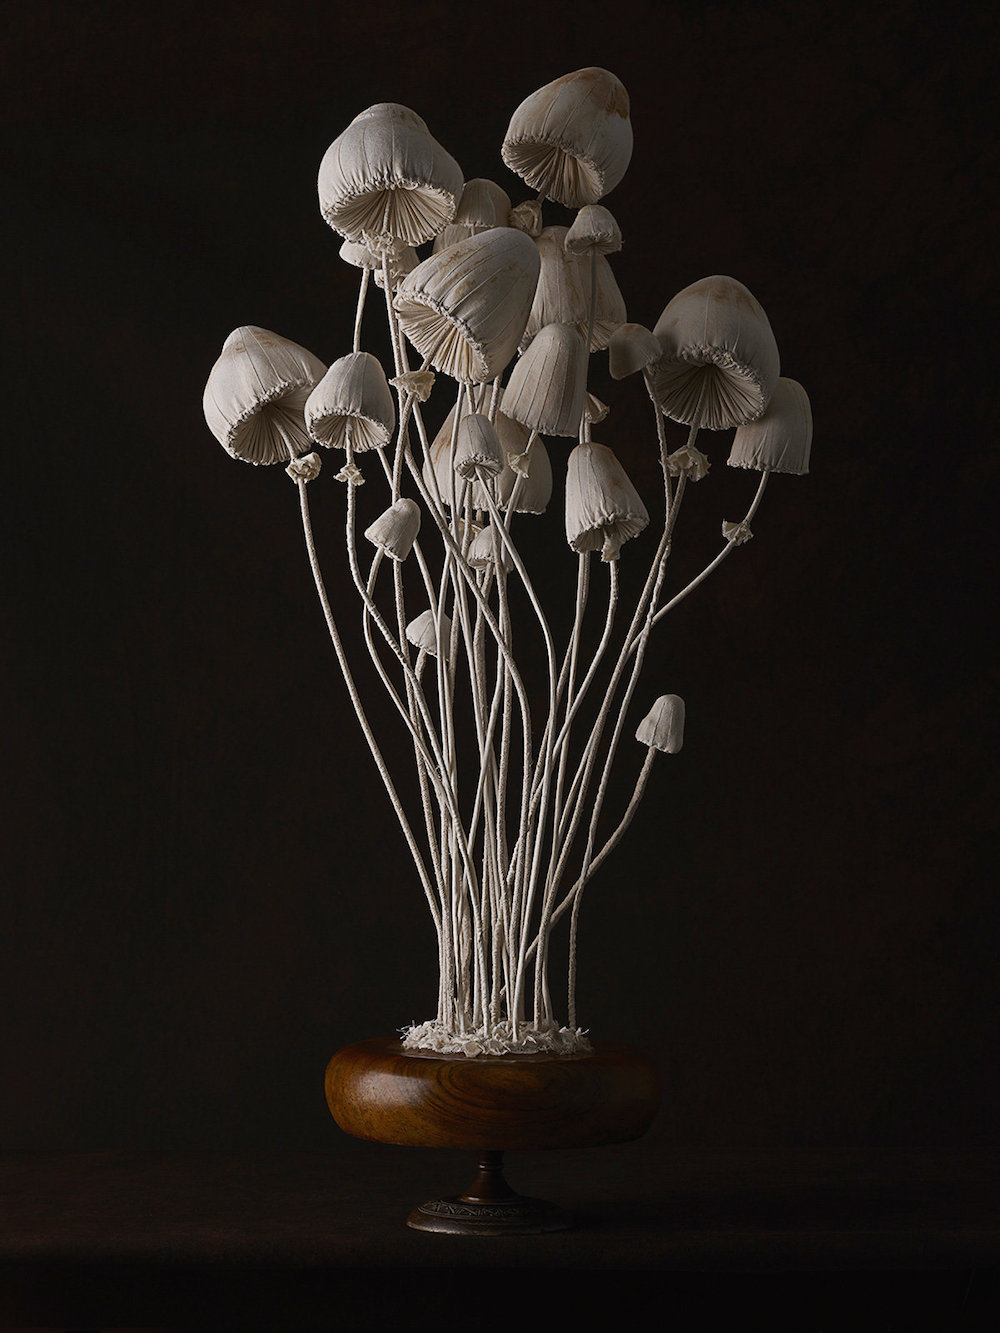 Sculptures of mushrooms toadstools, created from vintage fabrics 09